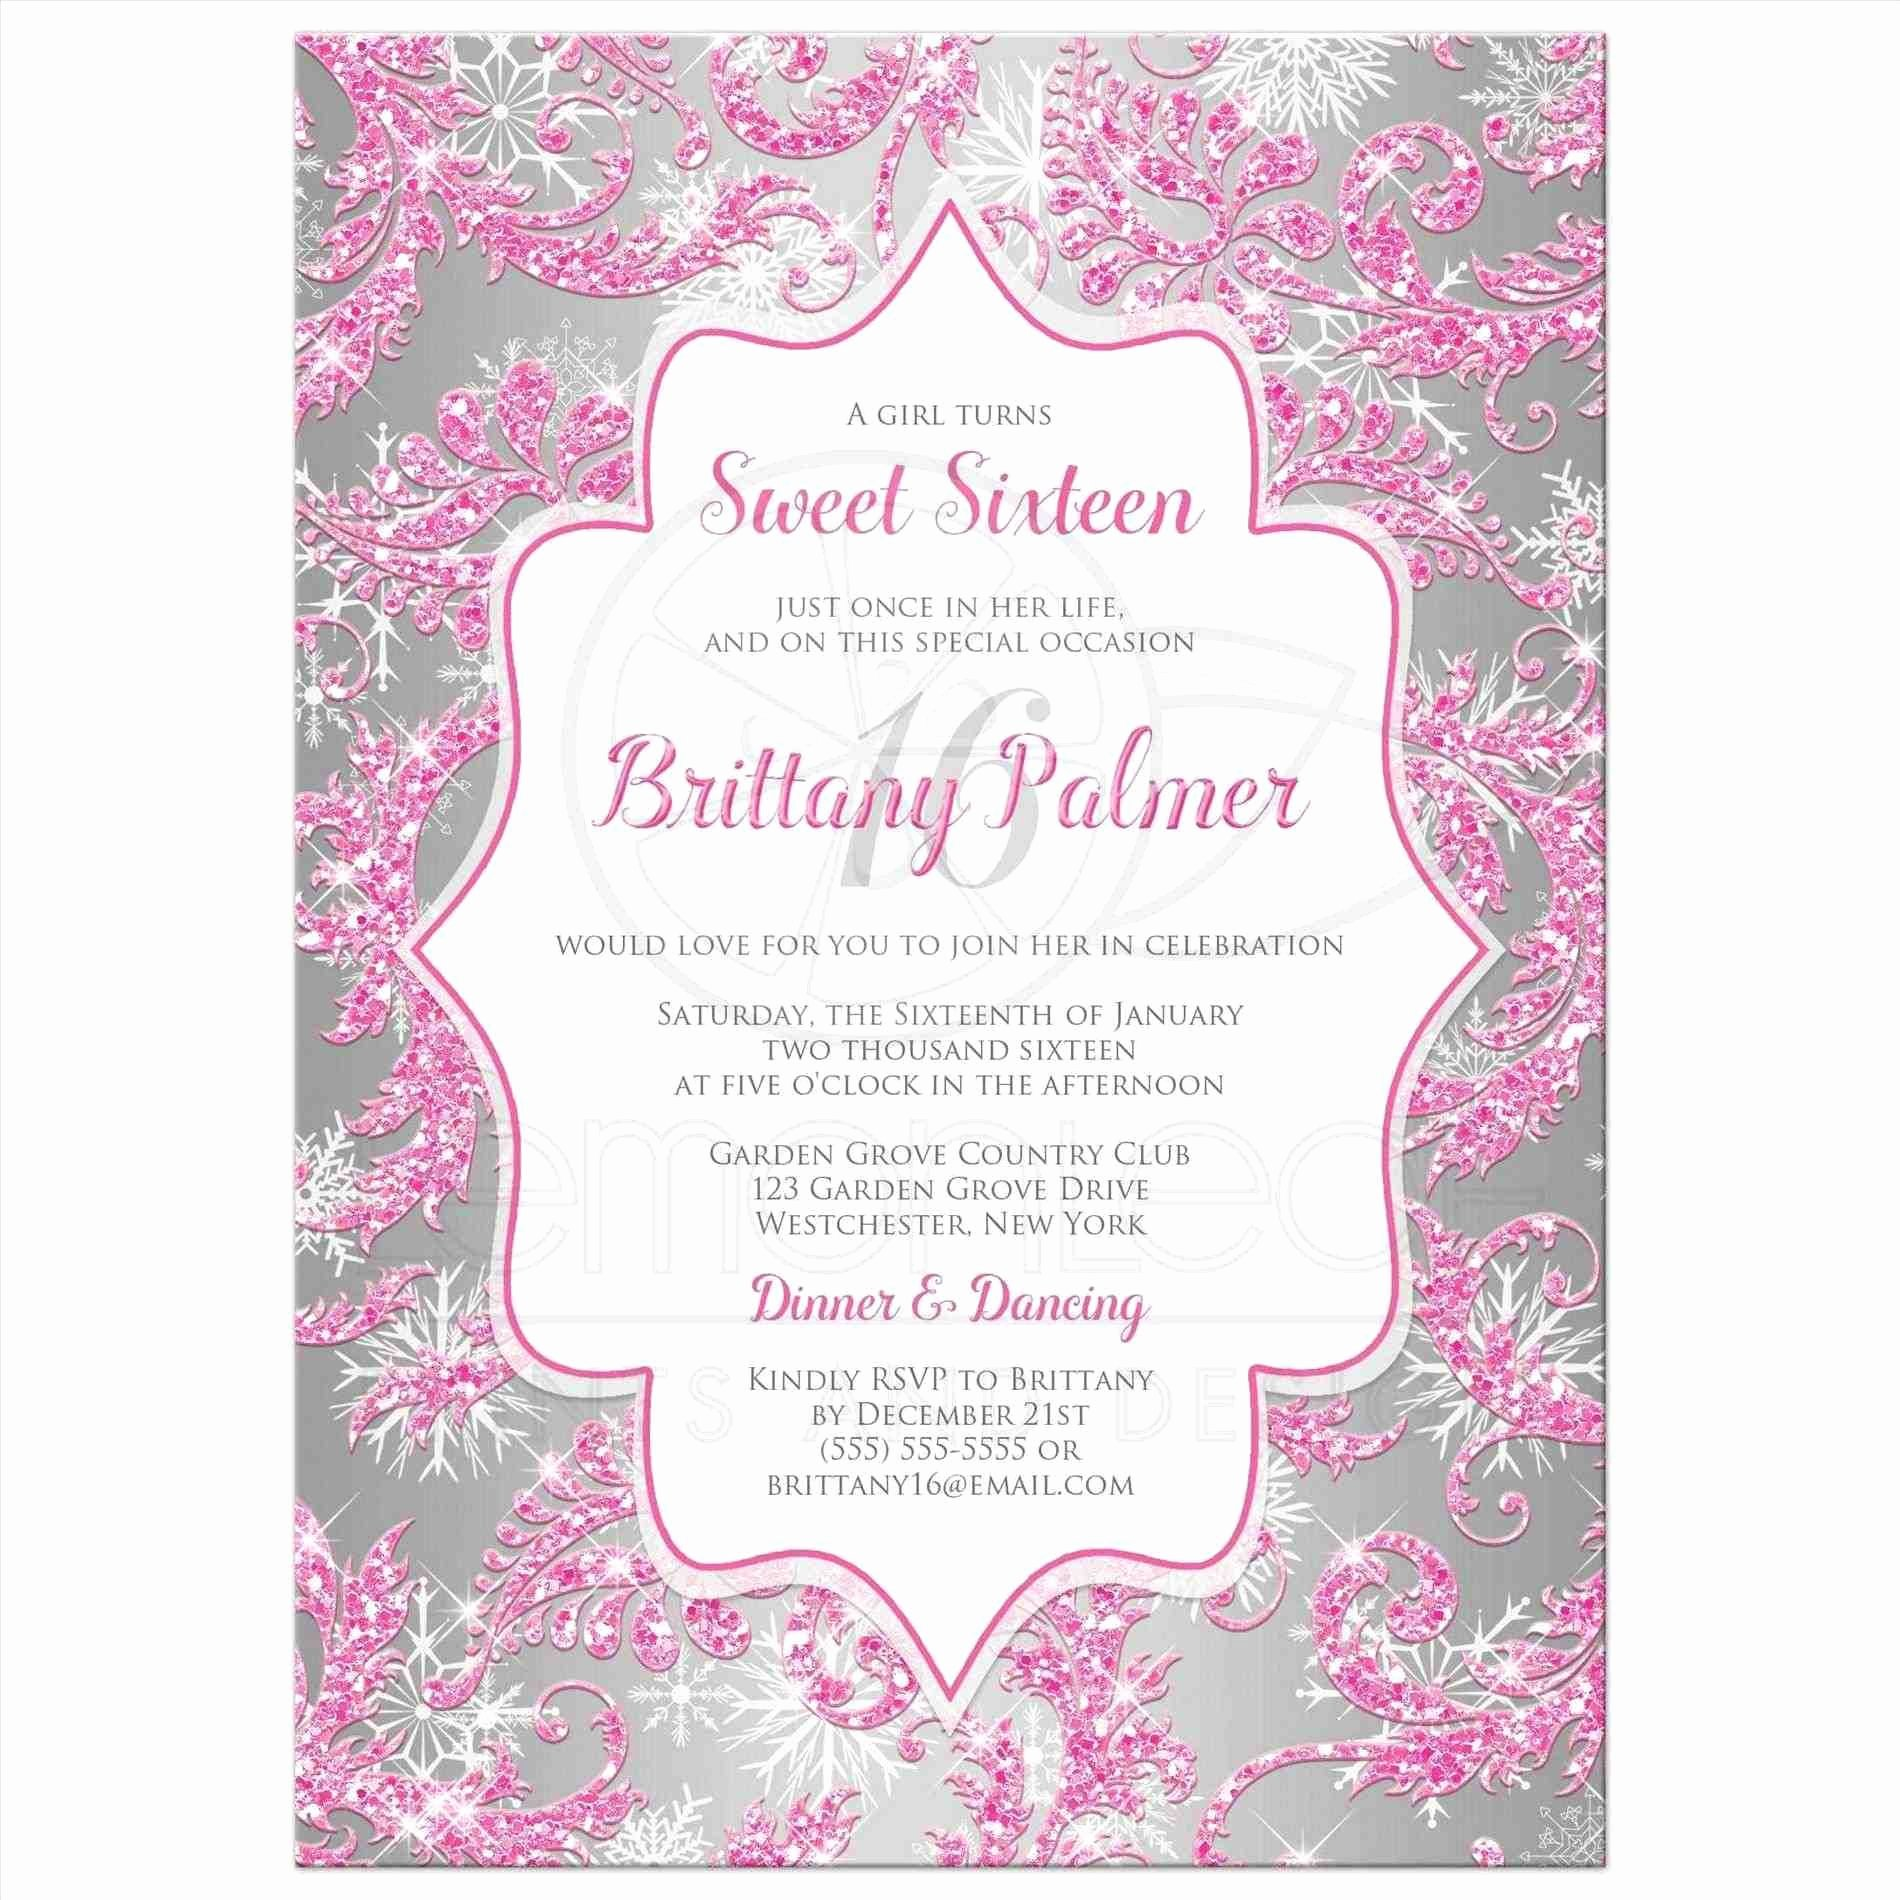 Sweet Sixteen Invitation Template Awesome Extraordinary Boys 16th Birthday Invitation Wording for